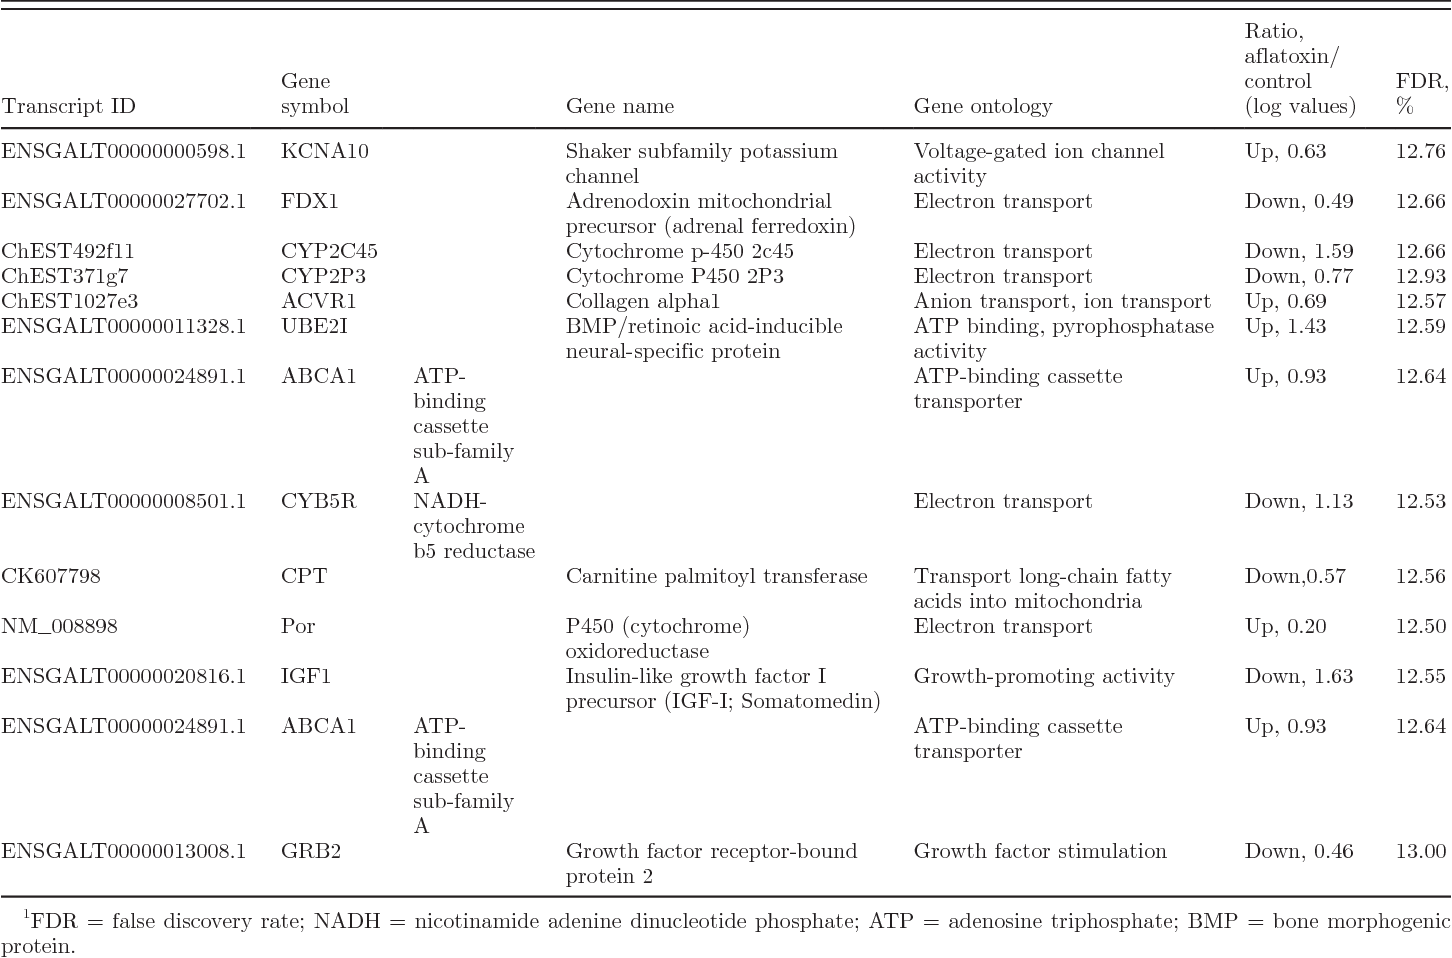 Table 2. Differentially expressed genes associated with oxidative phosphorylation and energy synthesis in B1-fed chicks compared with control birds at the end of 21-d treatment period1